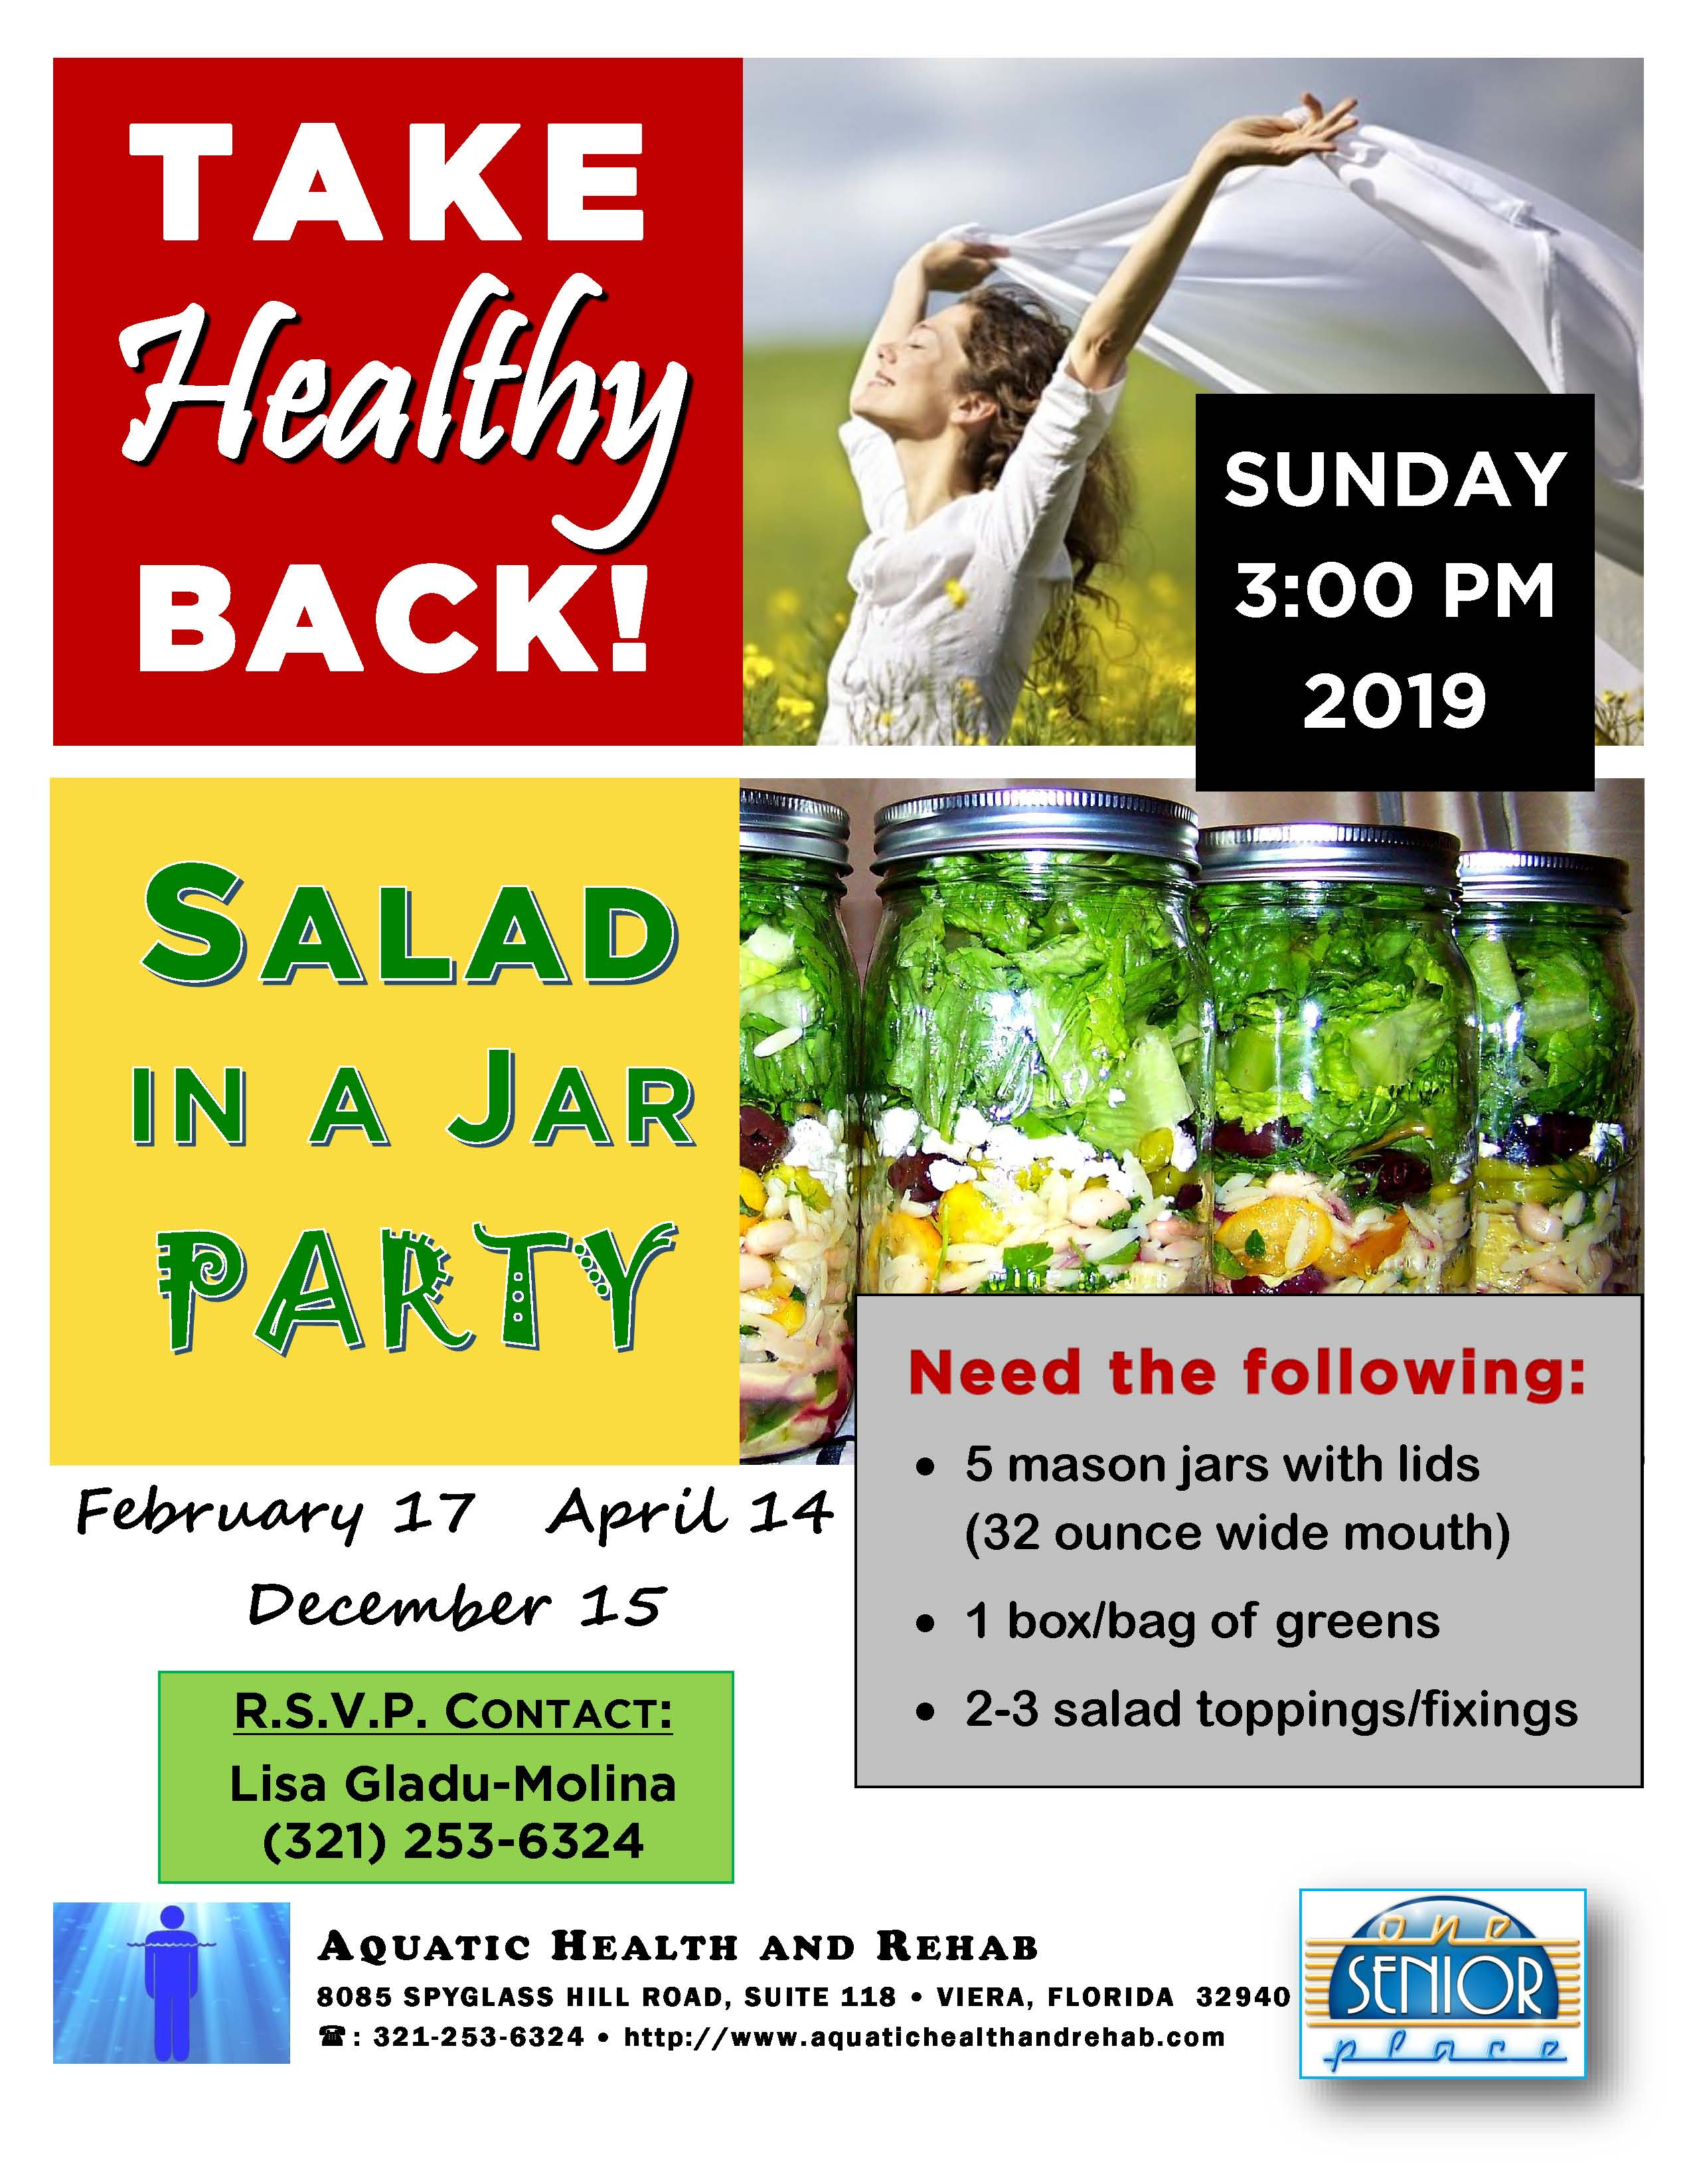 Take Healthy Back, Salad in a Jar Party with Aquatic Health